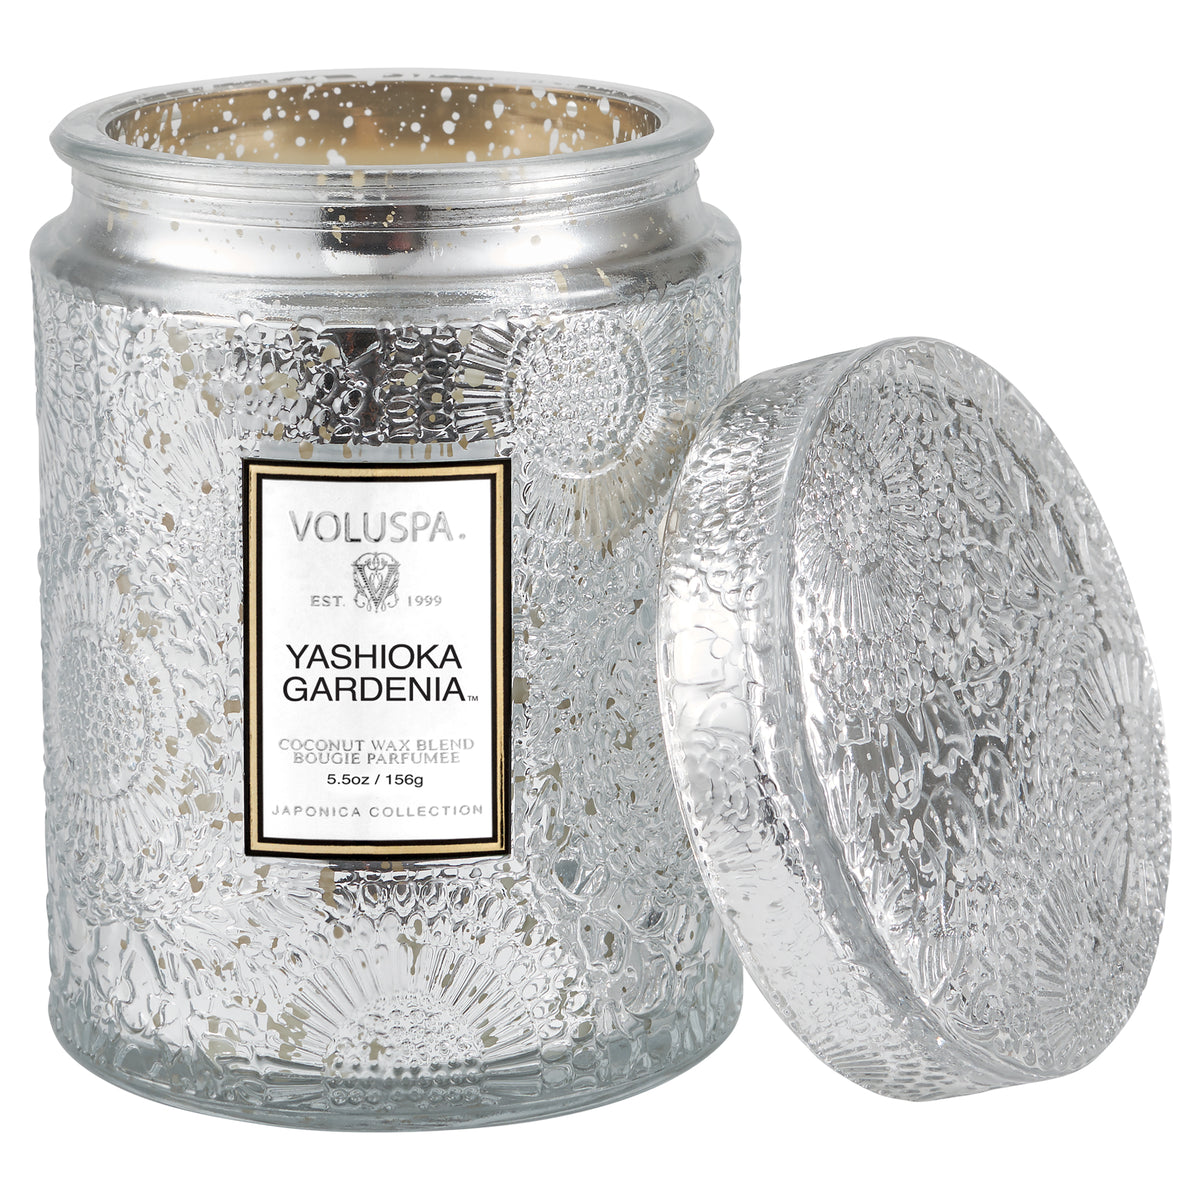 Yashioka Gardenia - Small Jar Candle - 2